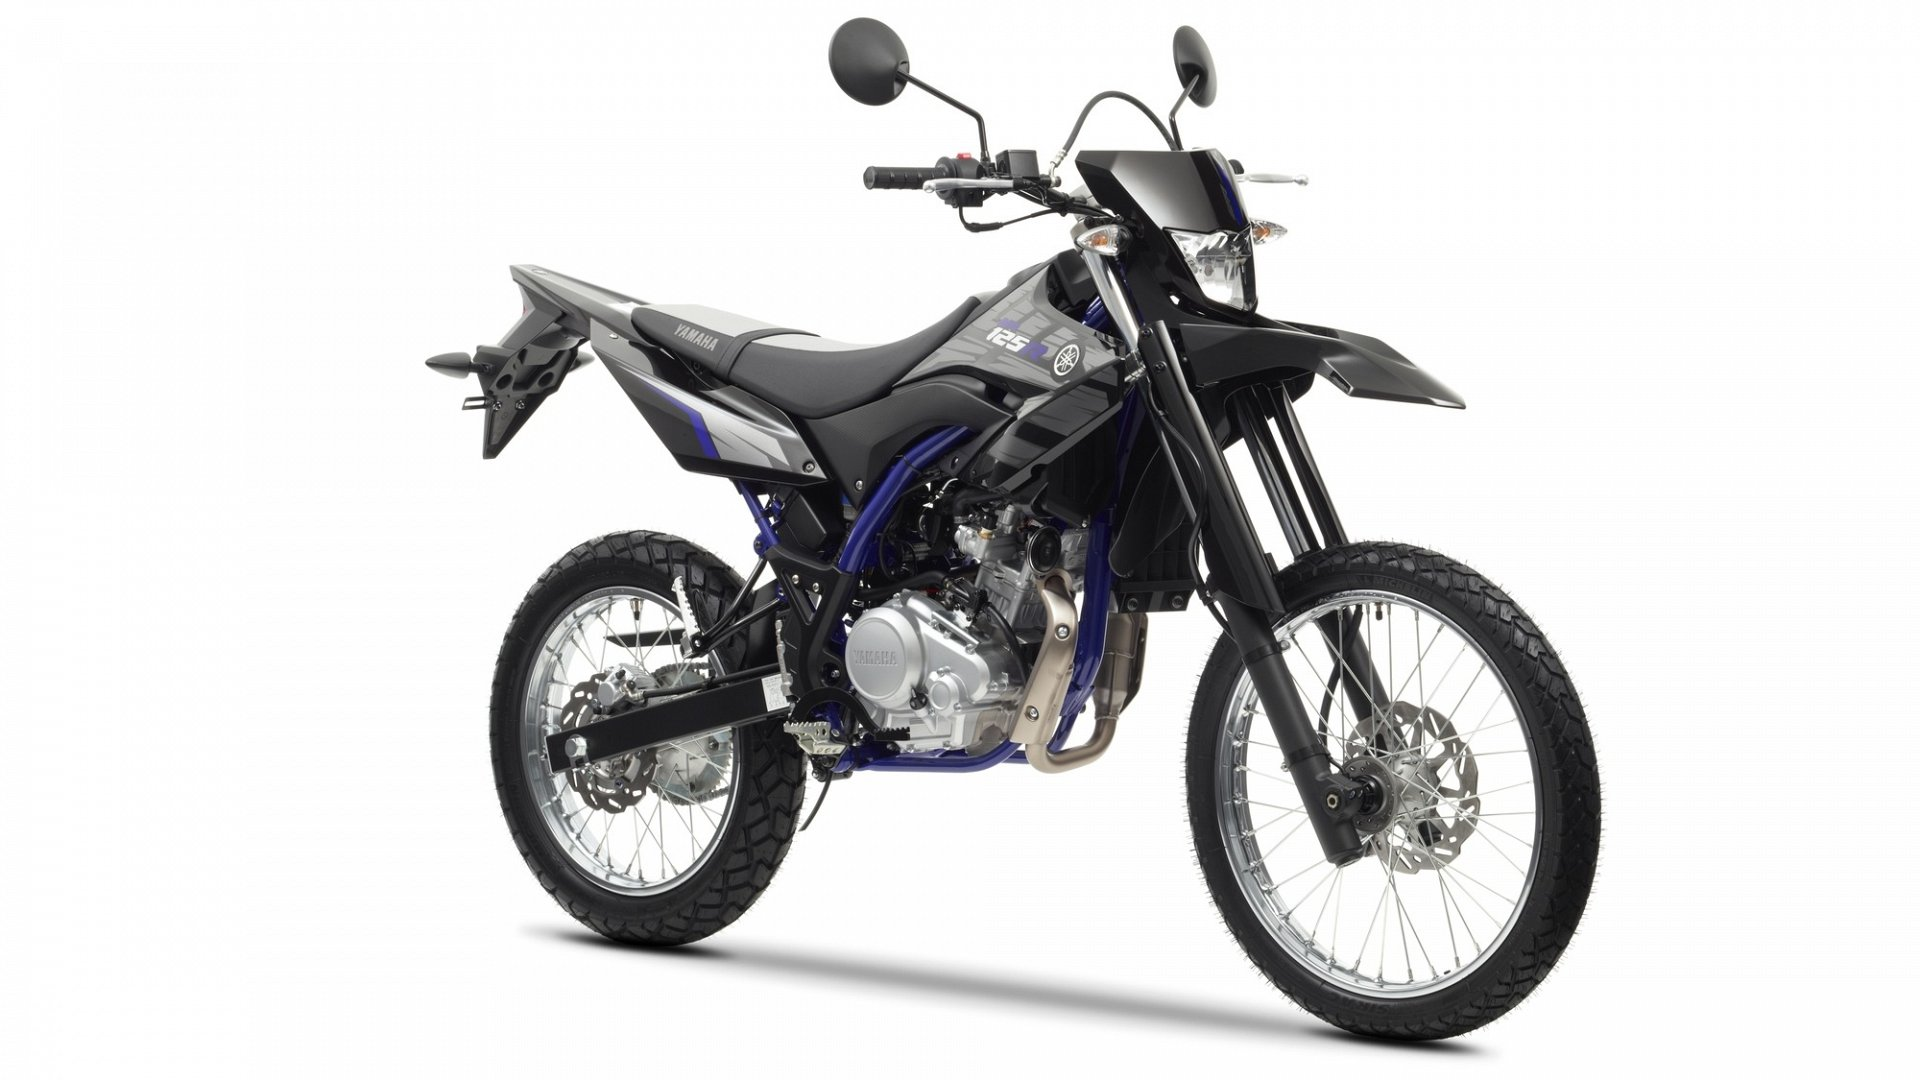 New 2014 Yamaha WR125R for sale. Finance available and part exchange ...: www.cmcbikes.com/new-yamaha-motorcycles/2014-yamaha-wr125r